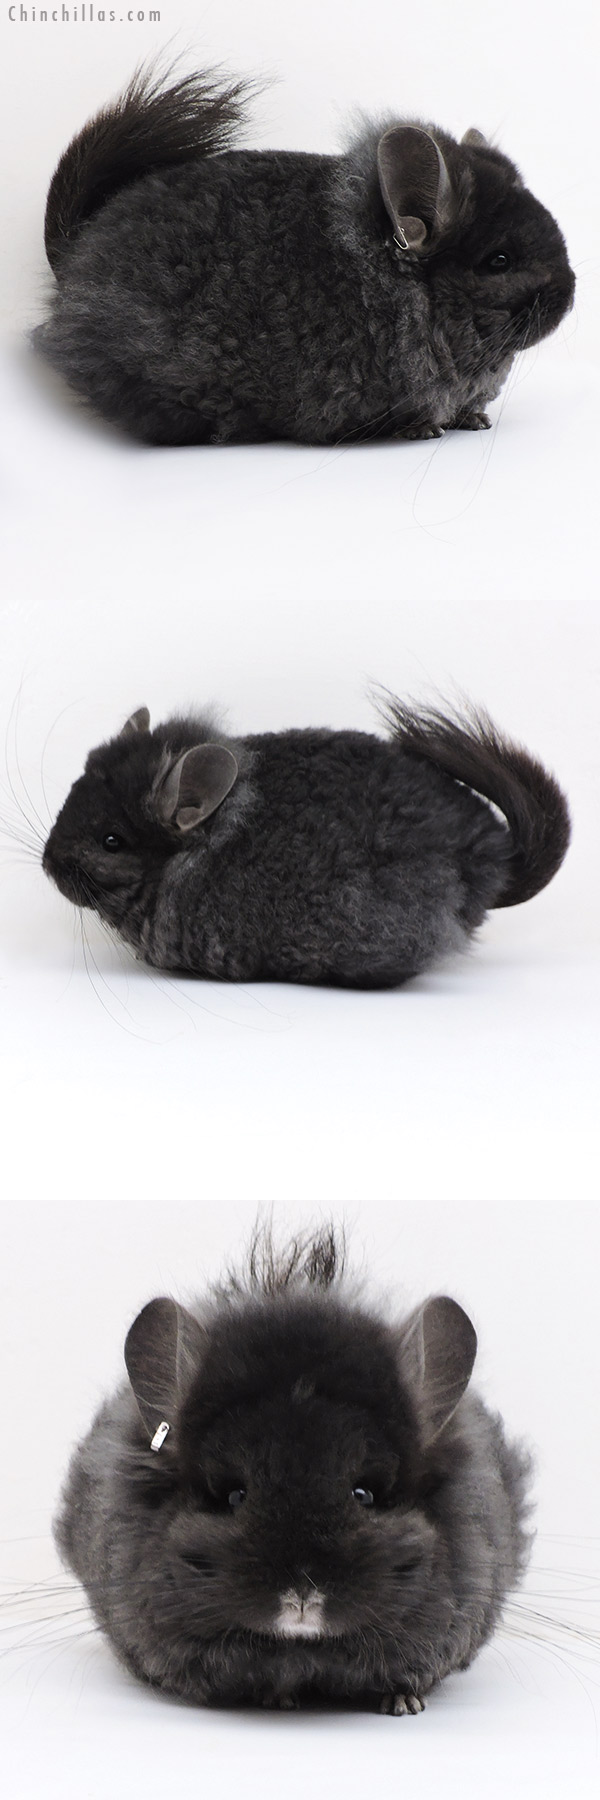 18047 Exceptional Blocky Ebony CCCU Royal Imperial Angora Female with Lion Mane Chinchilla